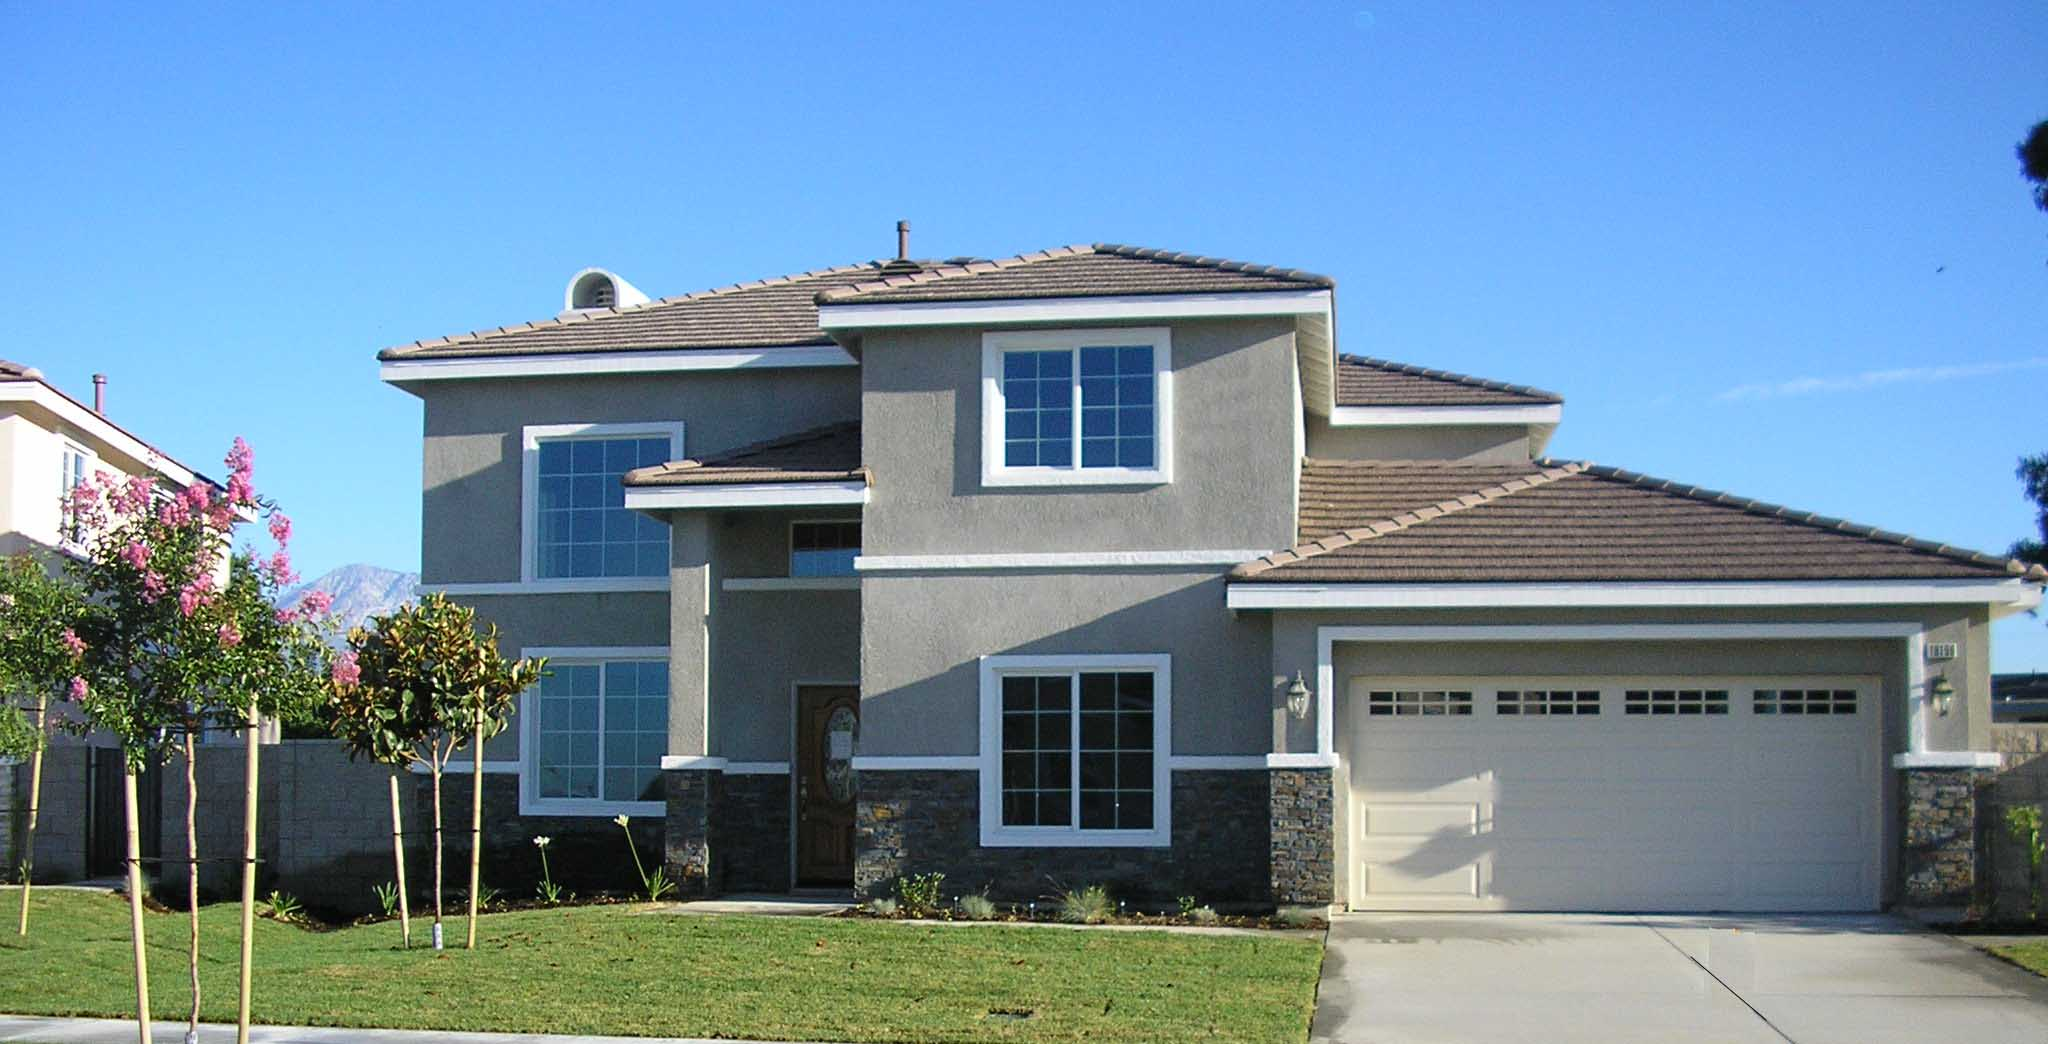 Escondido Single Family Homes Cityscape Houses For Sale